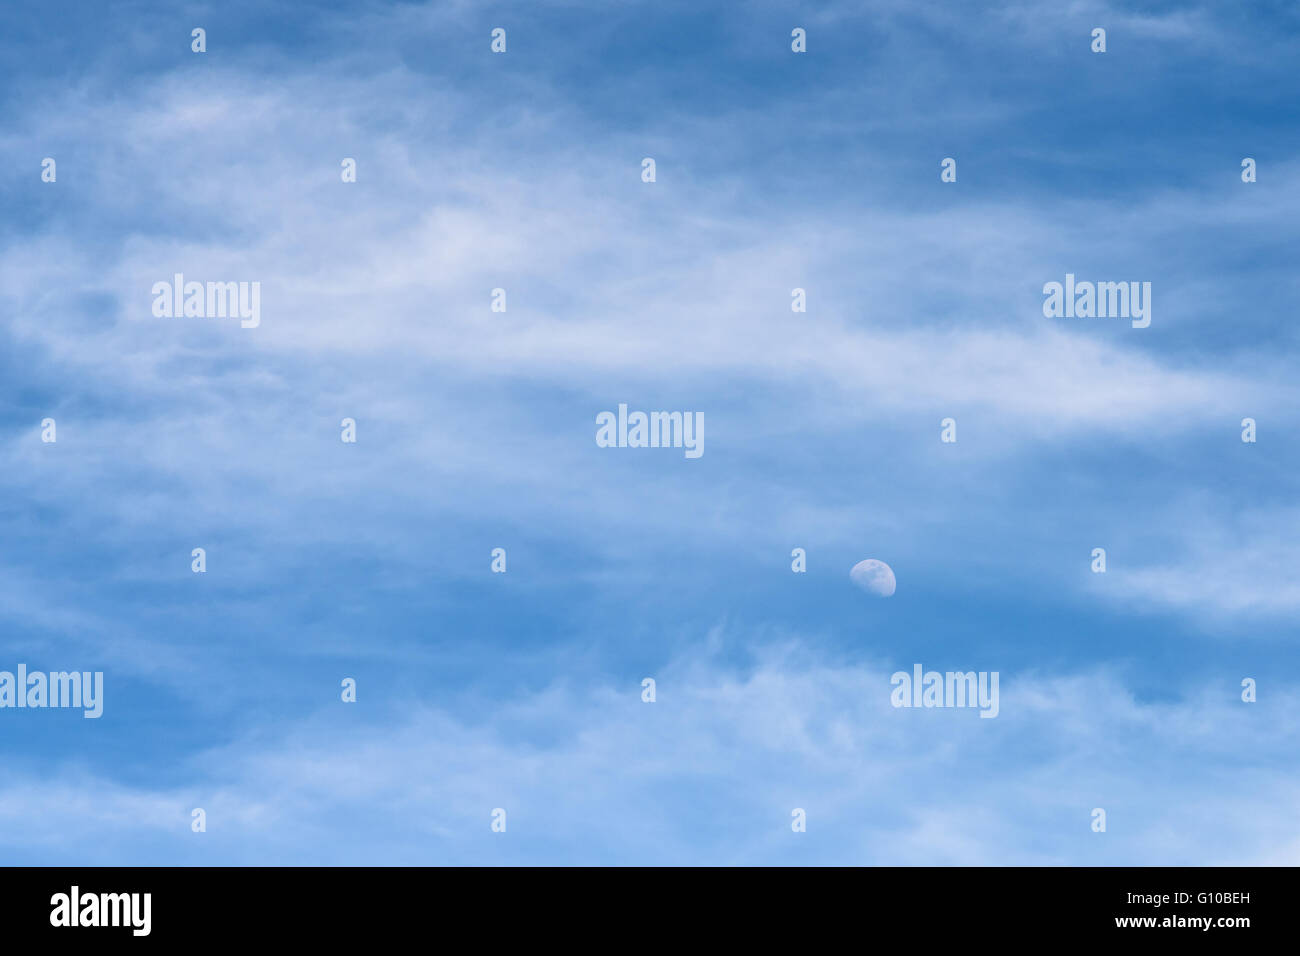 moon visible in daylight blue sky with white soft clouds stock photo